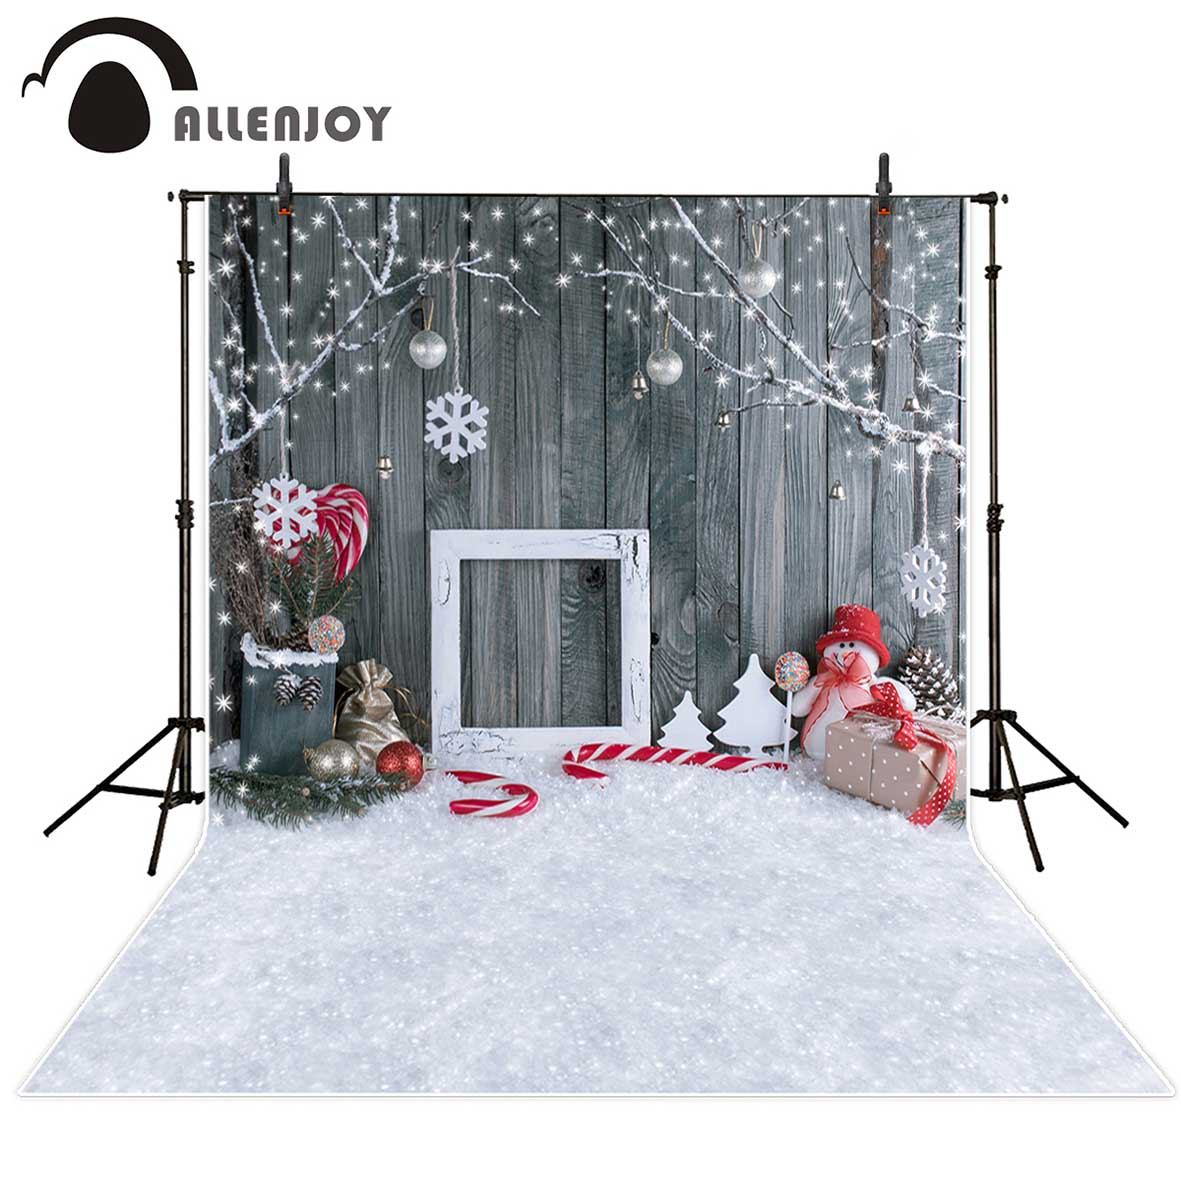 цены Allenjoy photographic background Christmas snowman gray woodwall snowflake backdrop photocall new photobooth vinyl photography